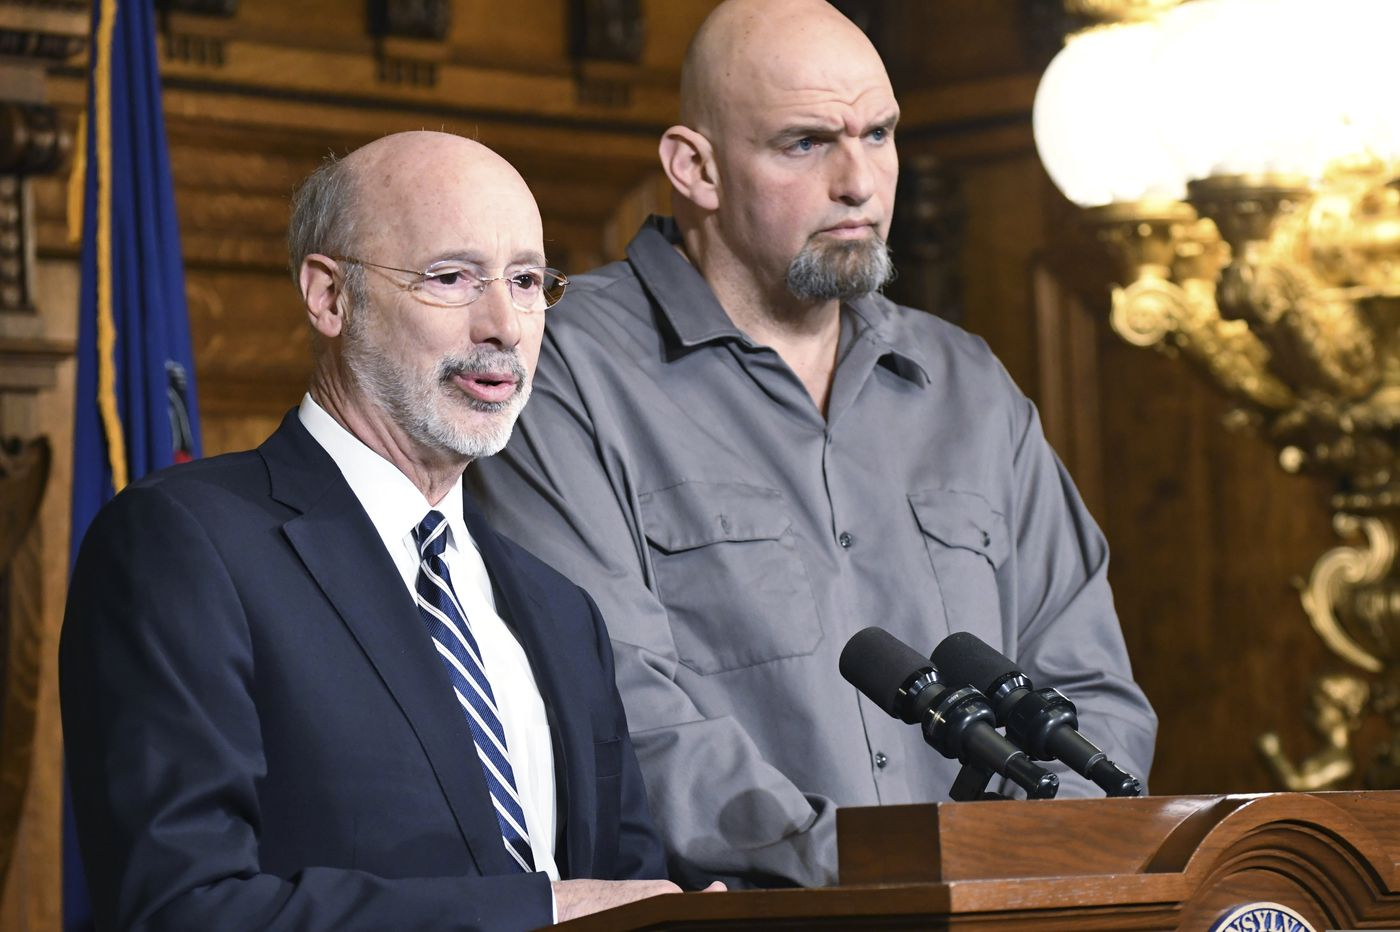 Gov. Tom Wolf releases 8 lifers, more than any other Pa. governor in decades